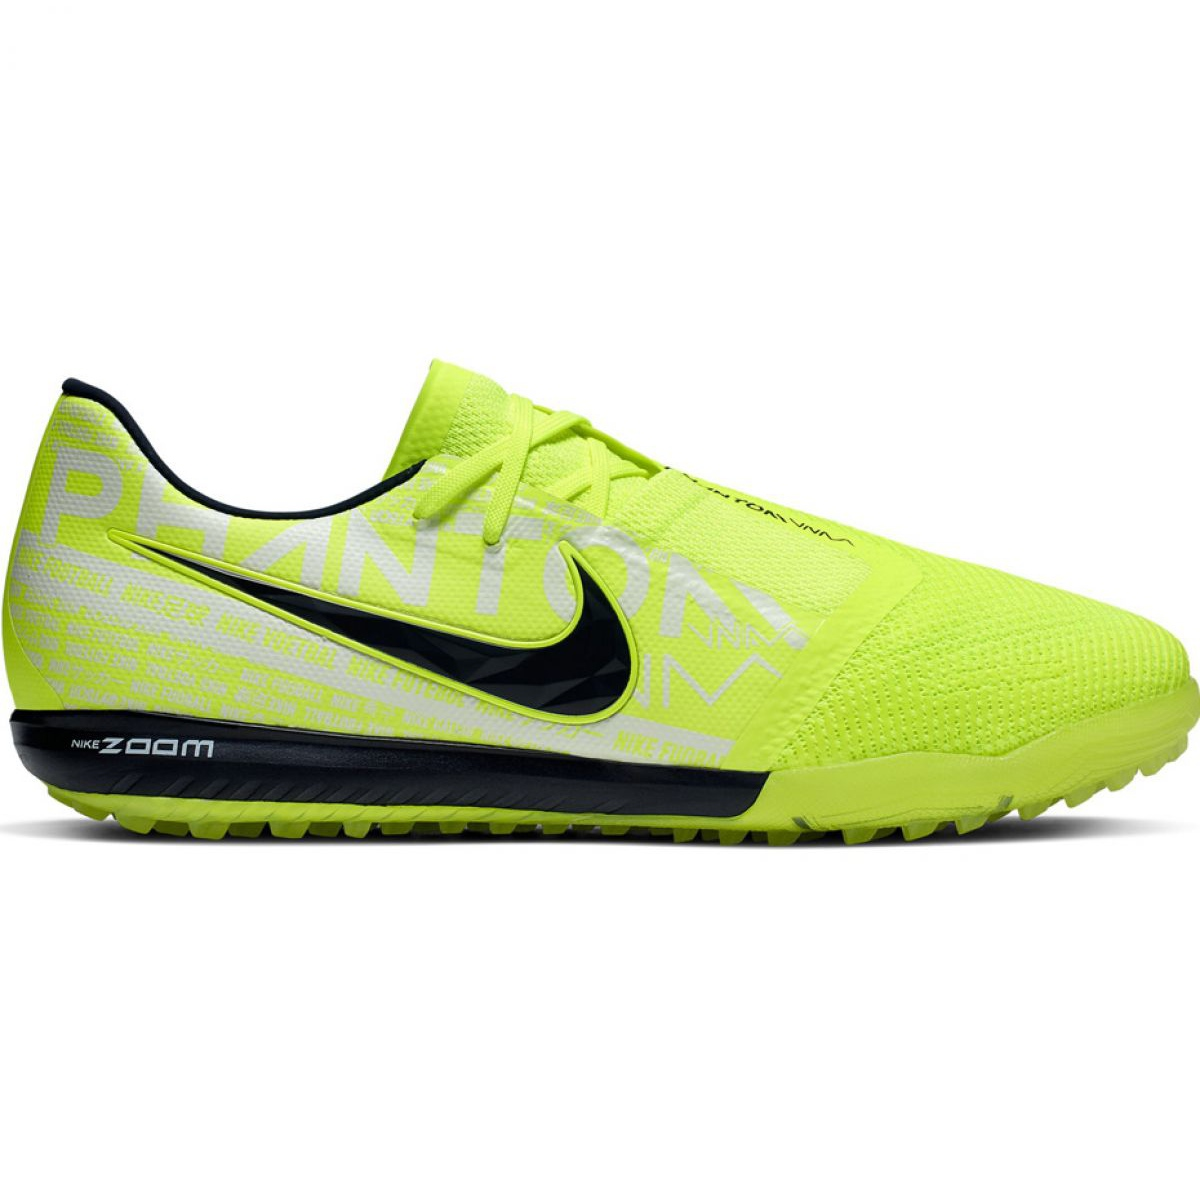 caja víctima Enriquecimiento  Nike Zoom Phantom Venom Pro Tf M BQ7497-717 football shoes yellow yellow -  ButyModne.pl